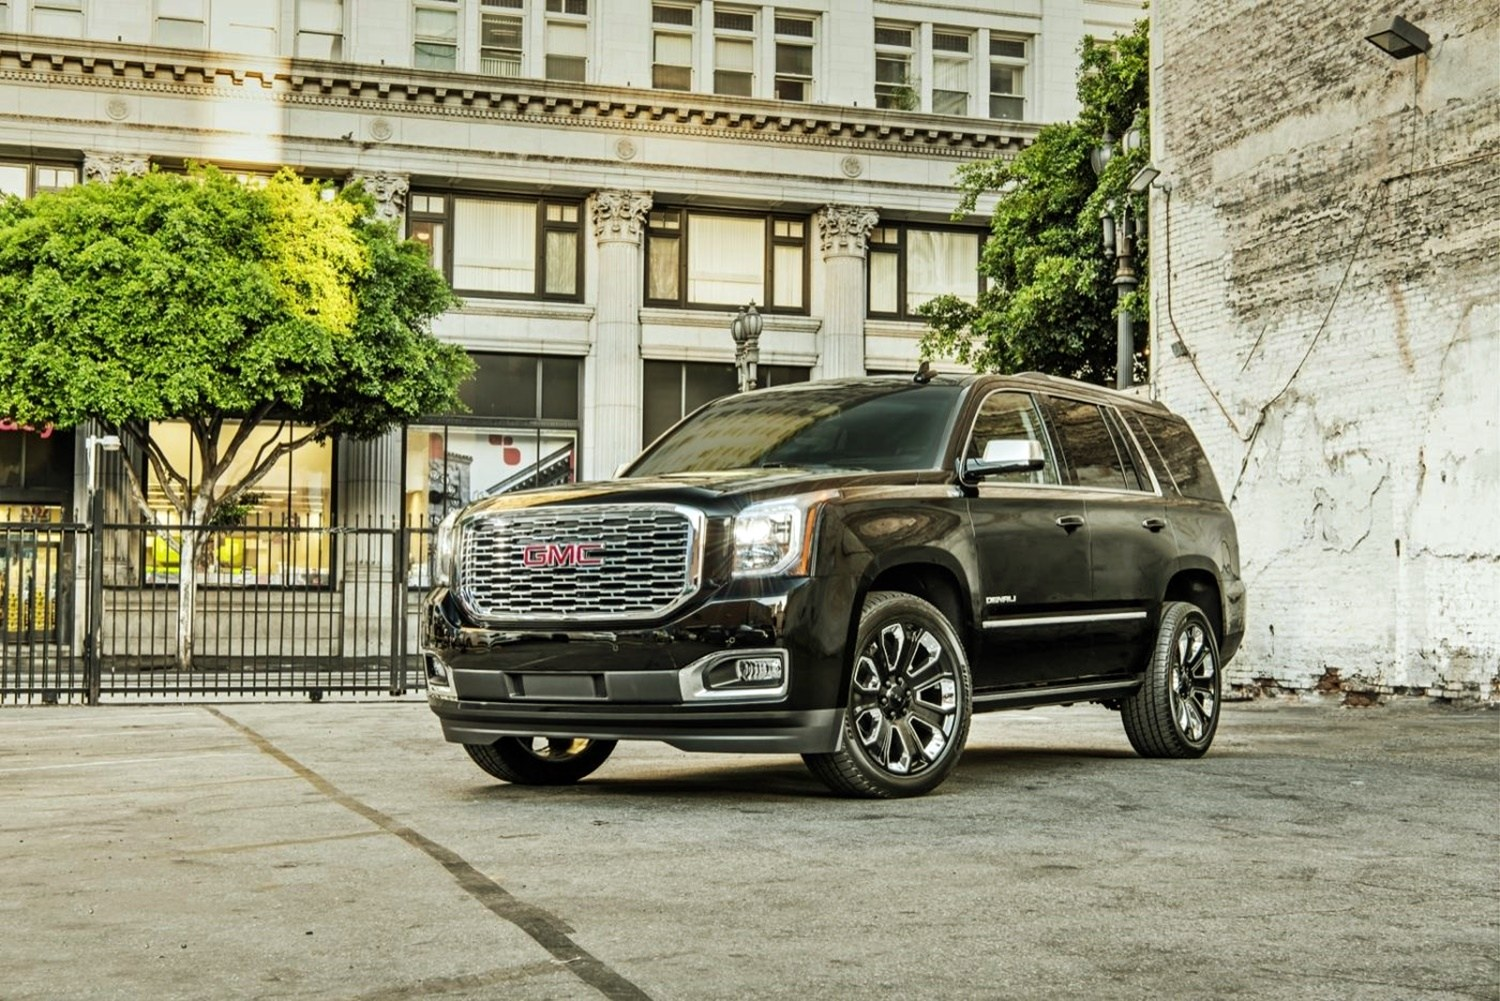 11 Best Review Gmc Yukon 2020 Release Date First Drive with Gmc Yukon 2020 Release Date